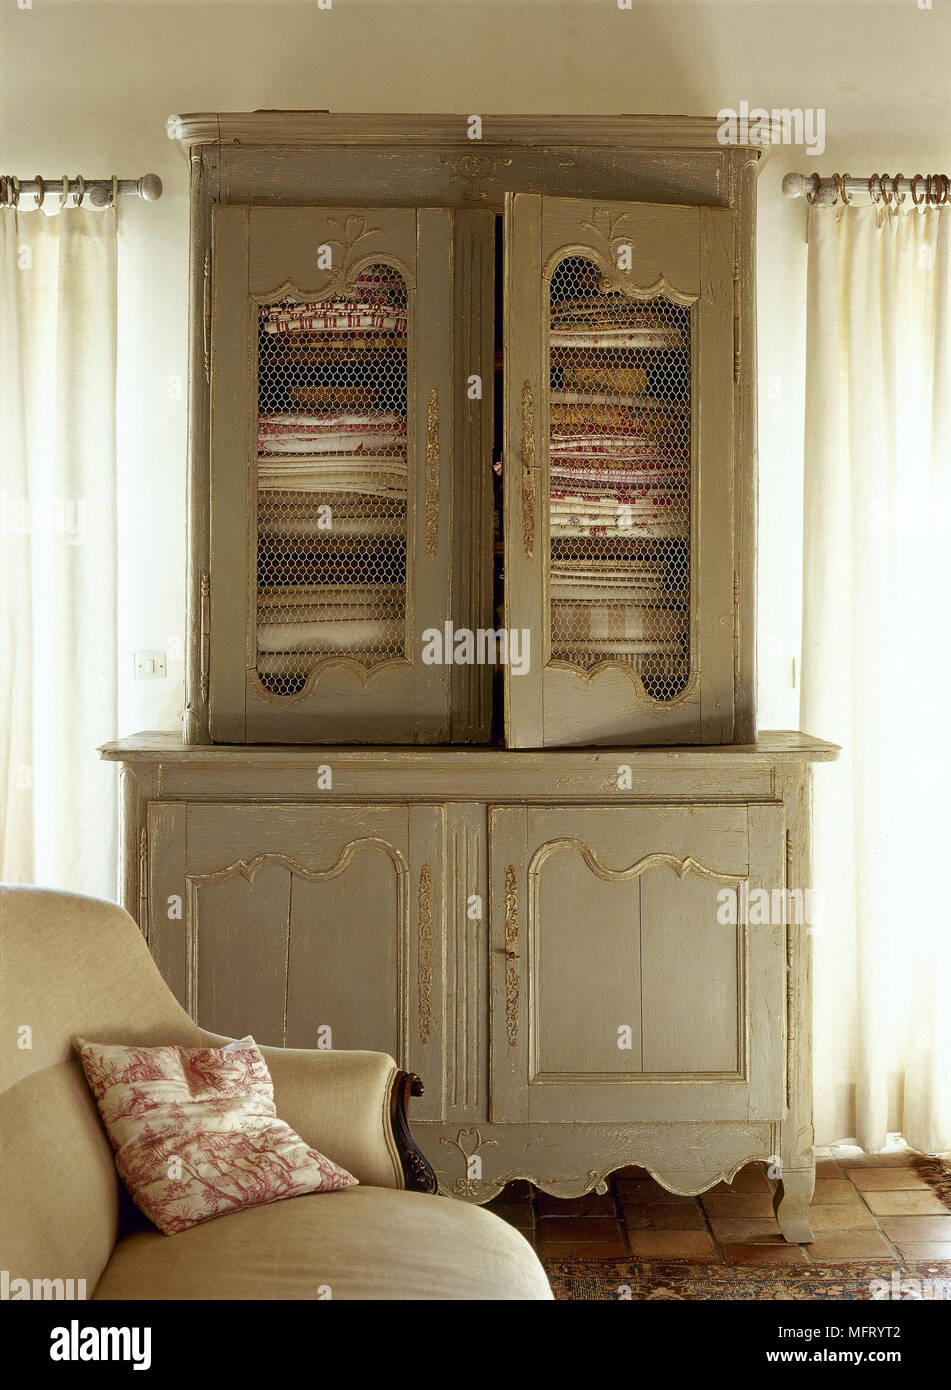 Meubles Antiques France French Antiques Furniture Stock Photos French Antiques Furniture